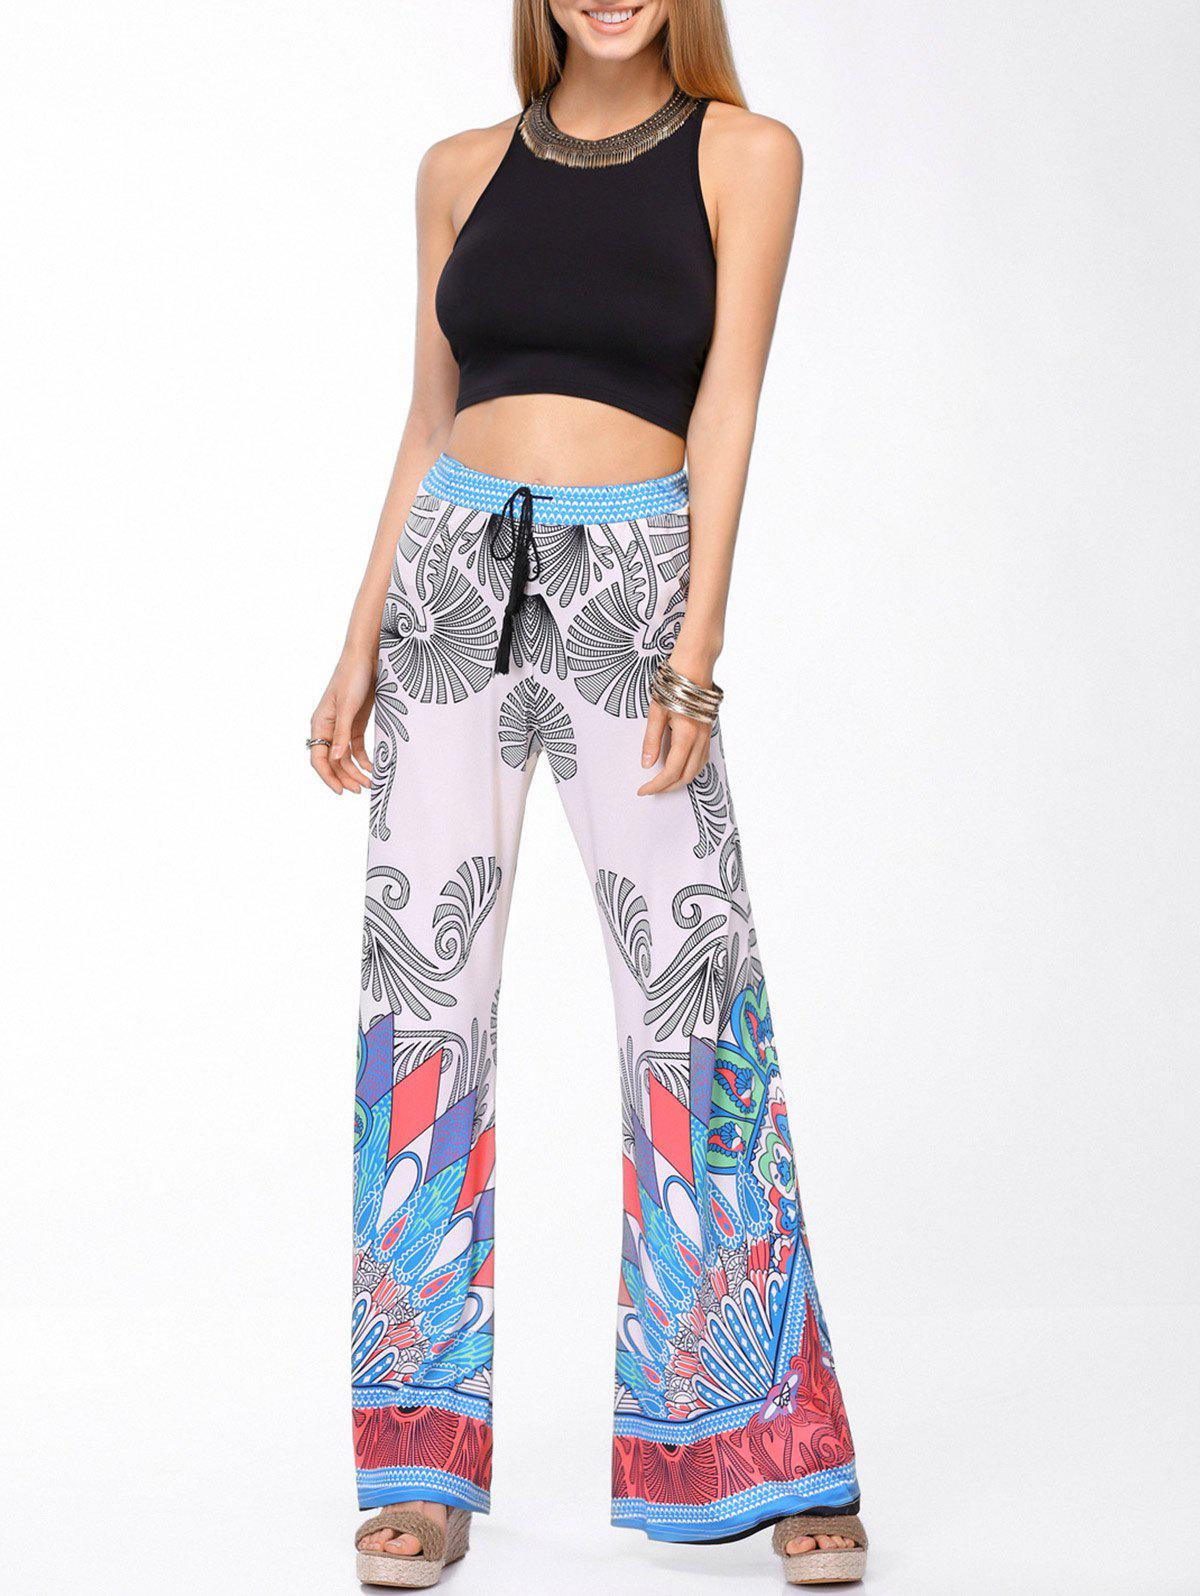 Stylish Round Neck Tank Top and Printed Wide Leg Pants Set For Women - COLORMIX L